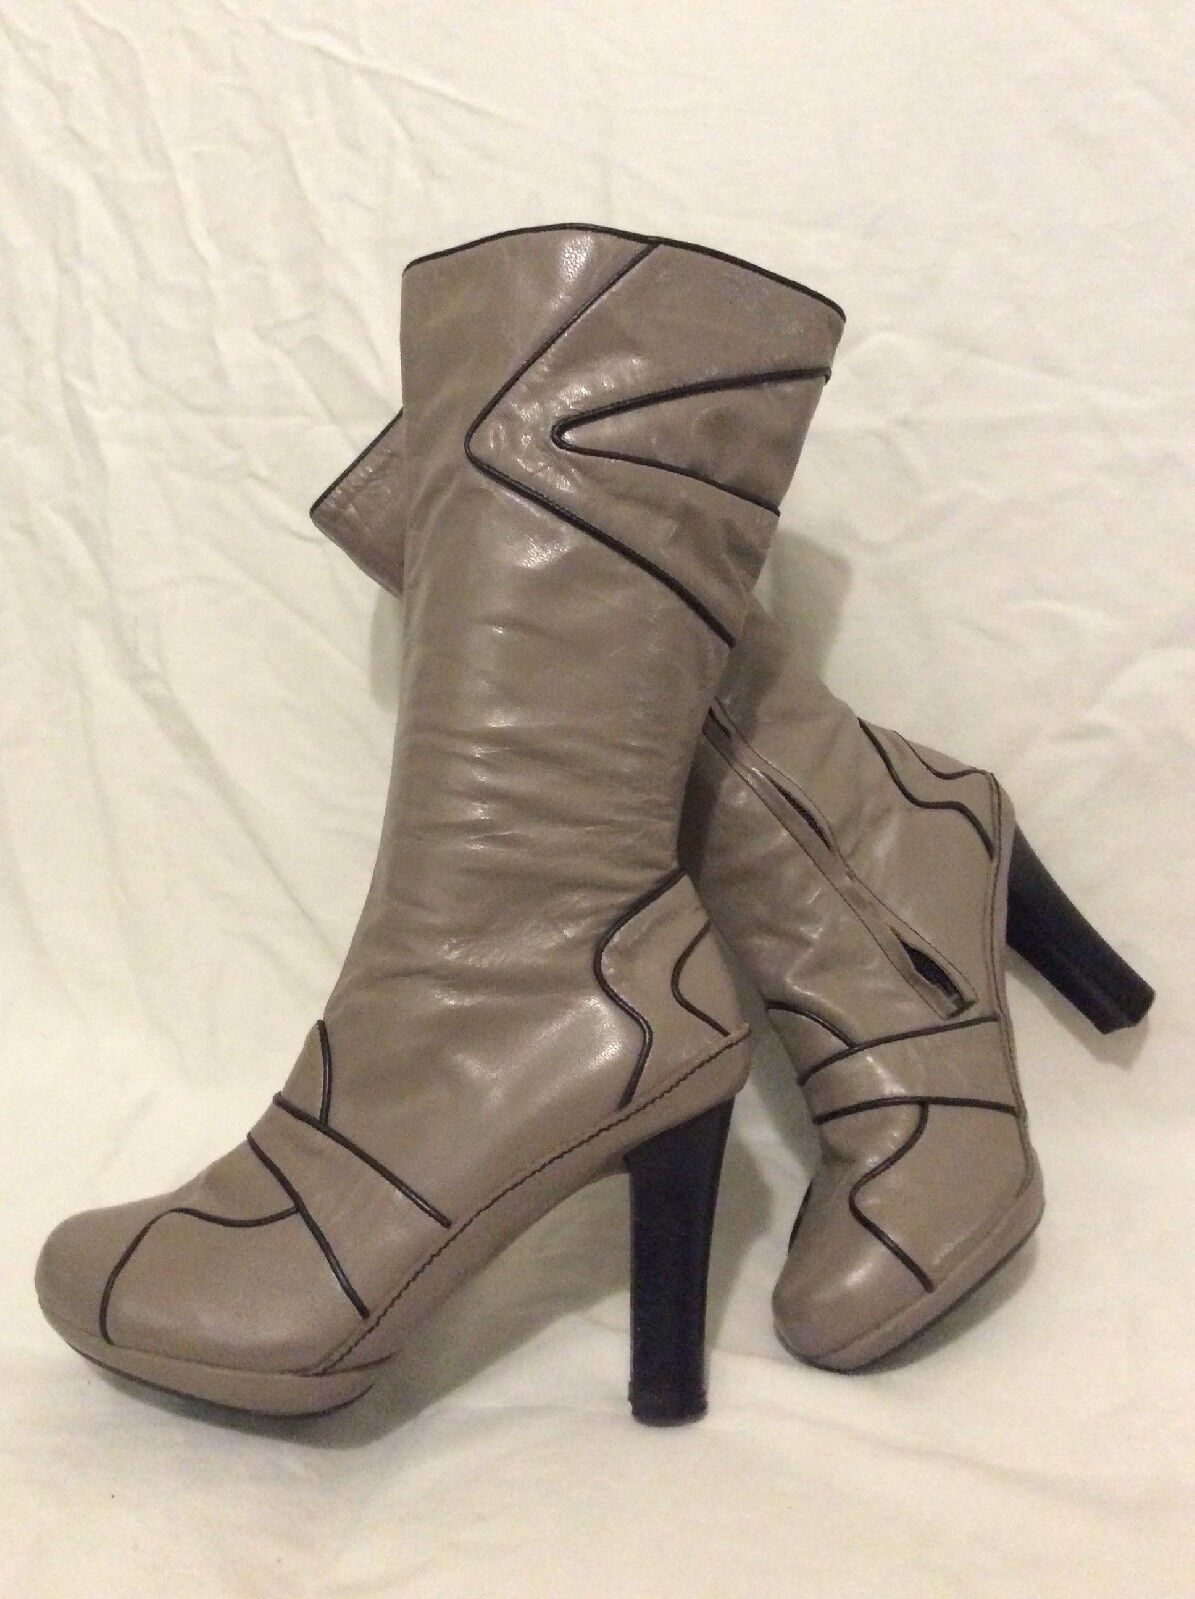 J shoes Grey Mid Calf Leather Boots Size 6